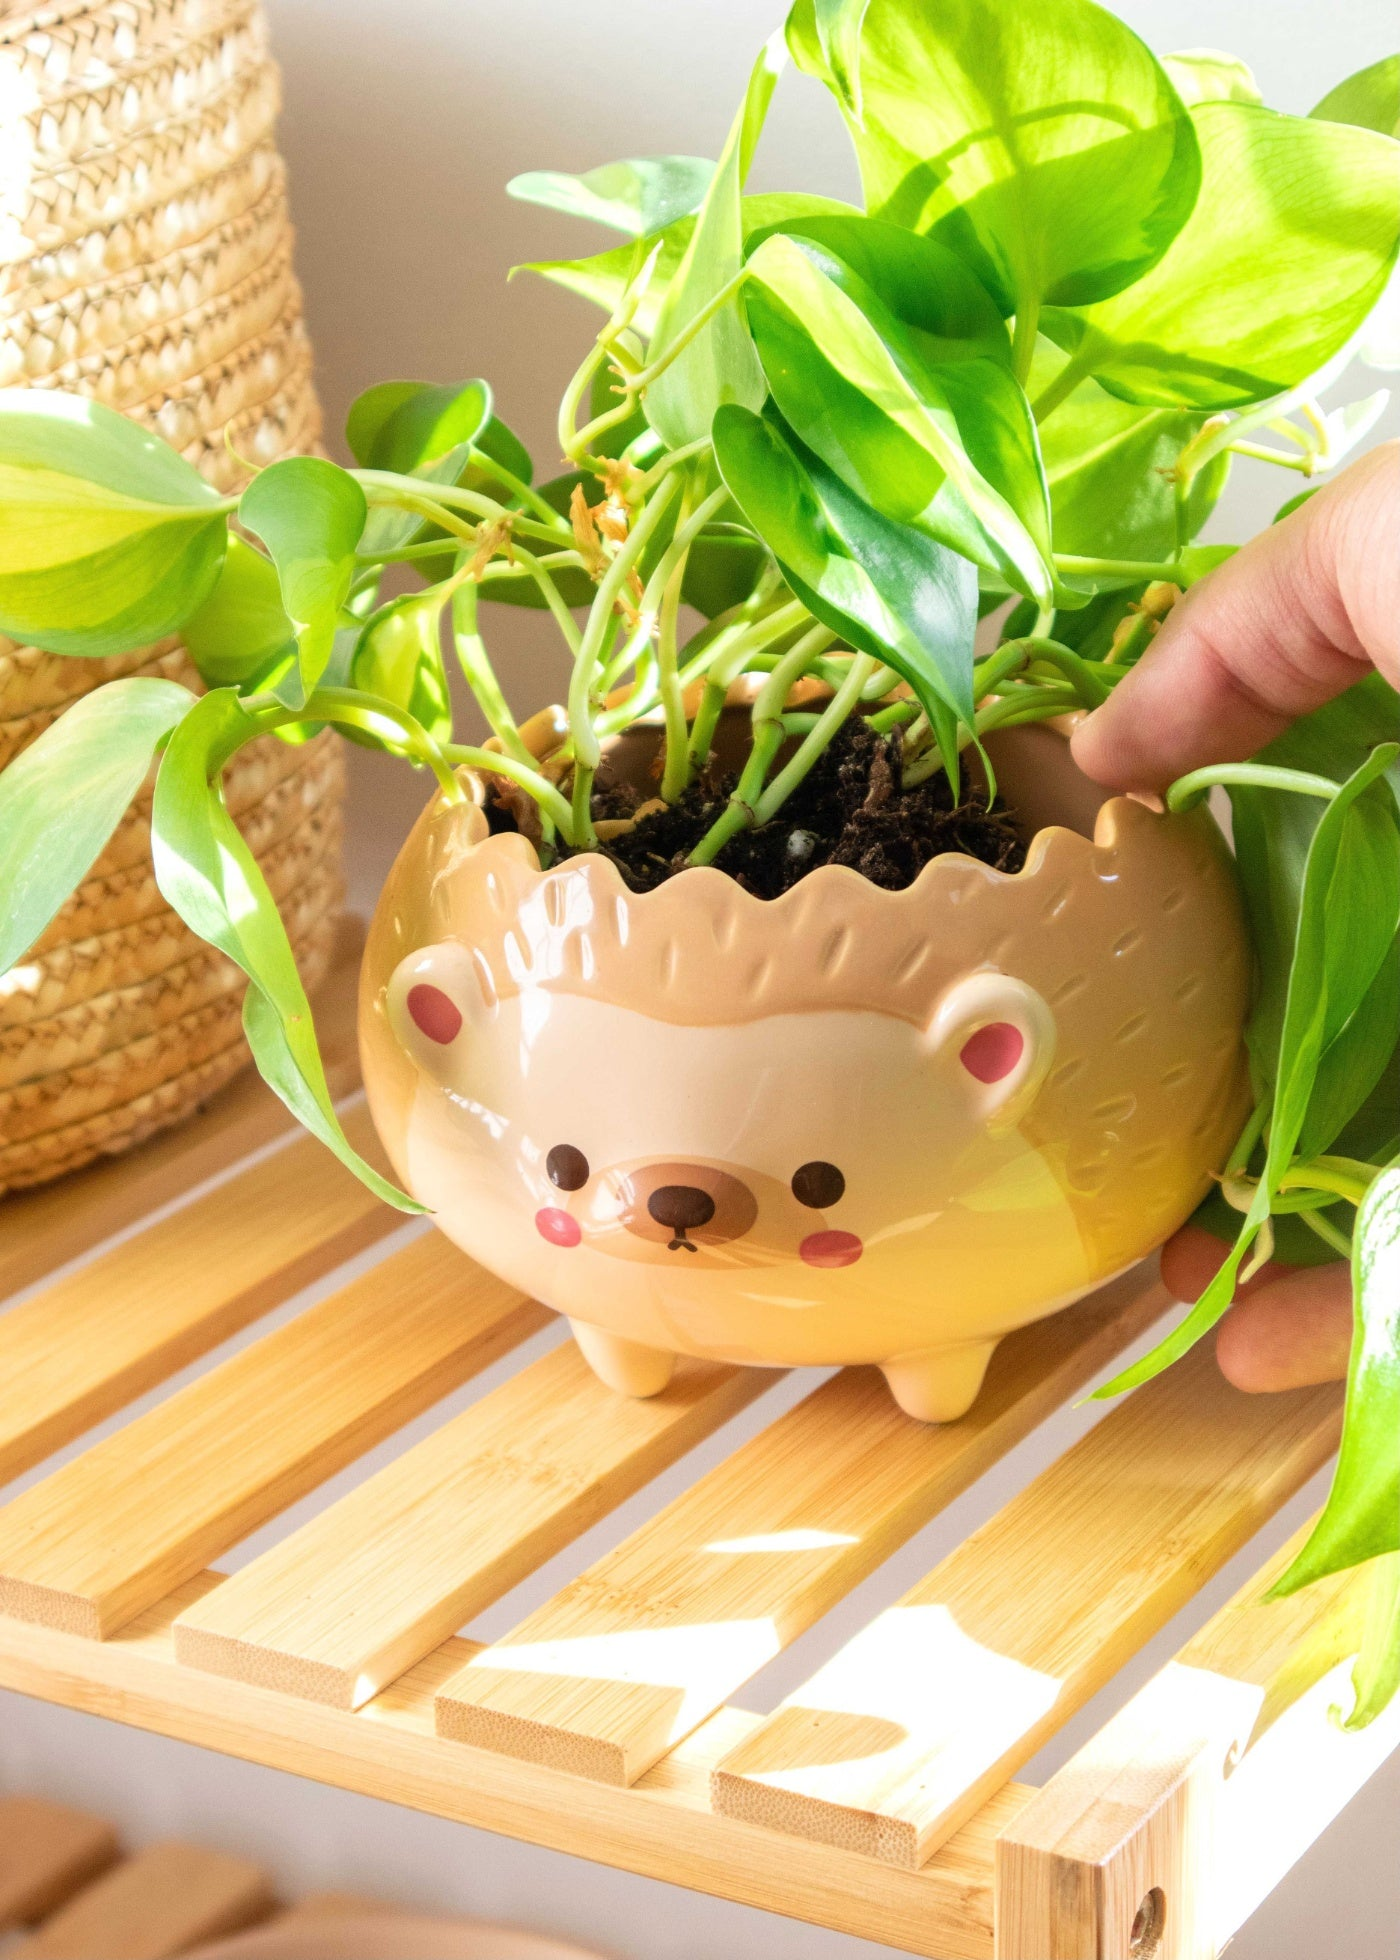 Heji Hedgehog Planter